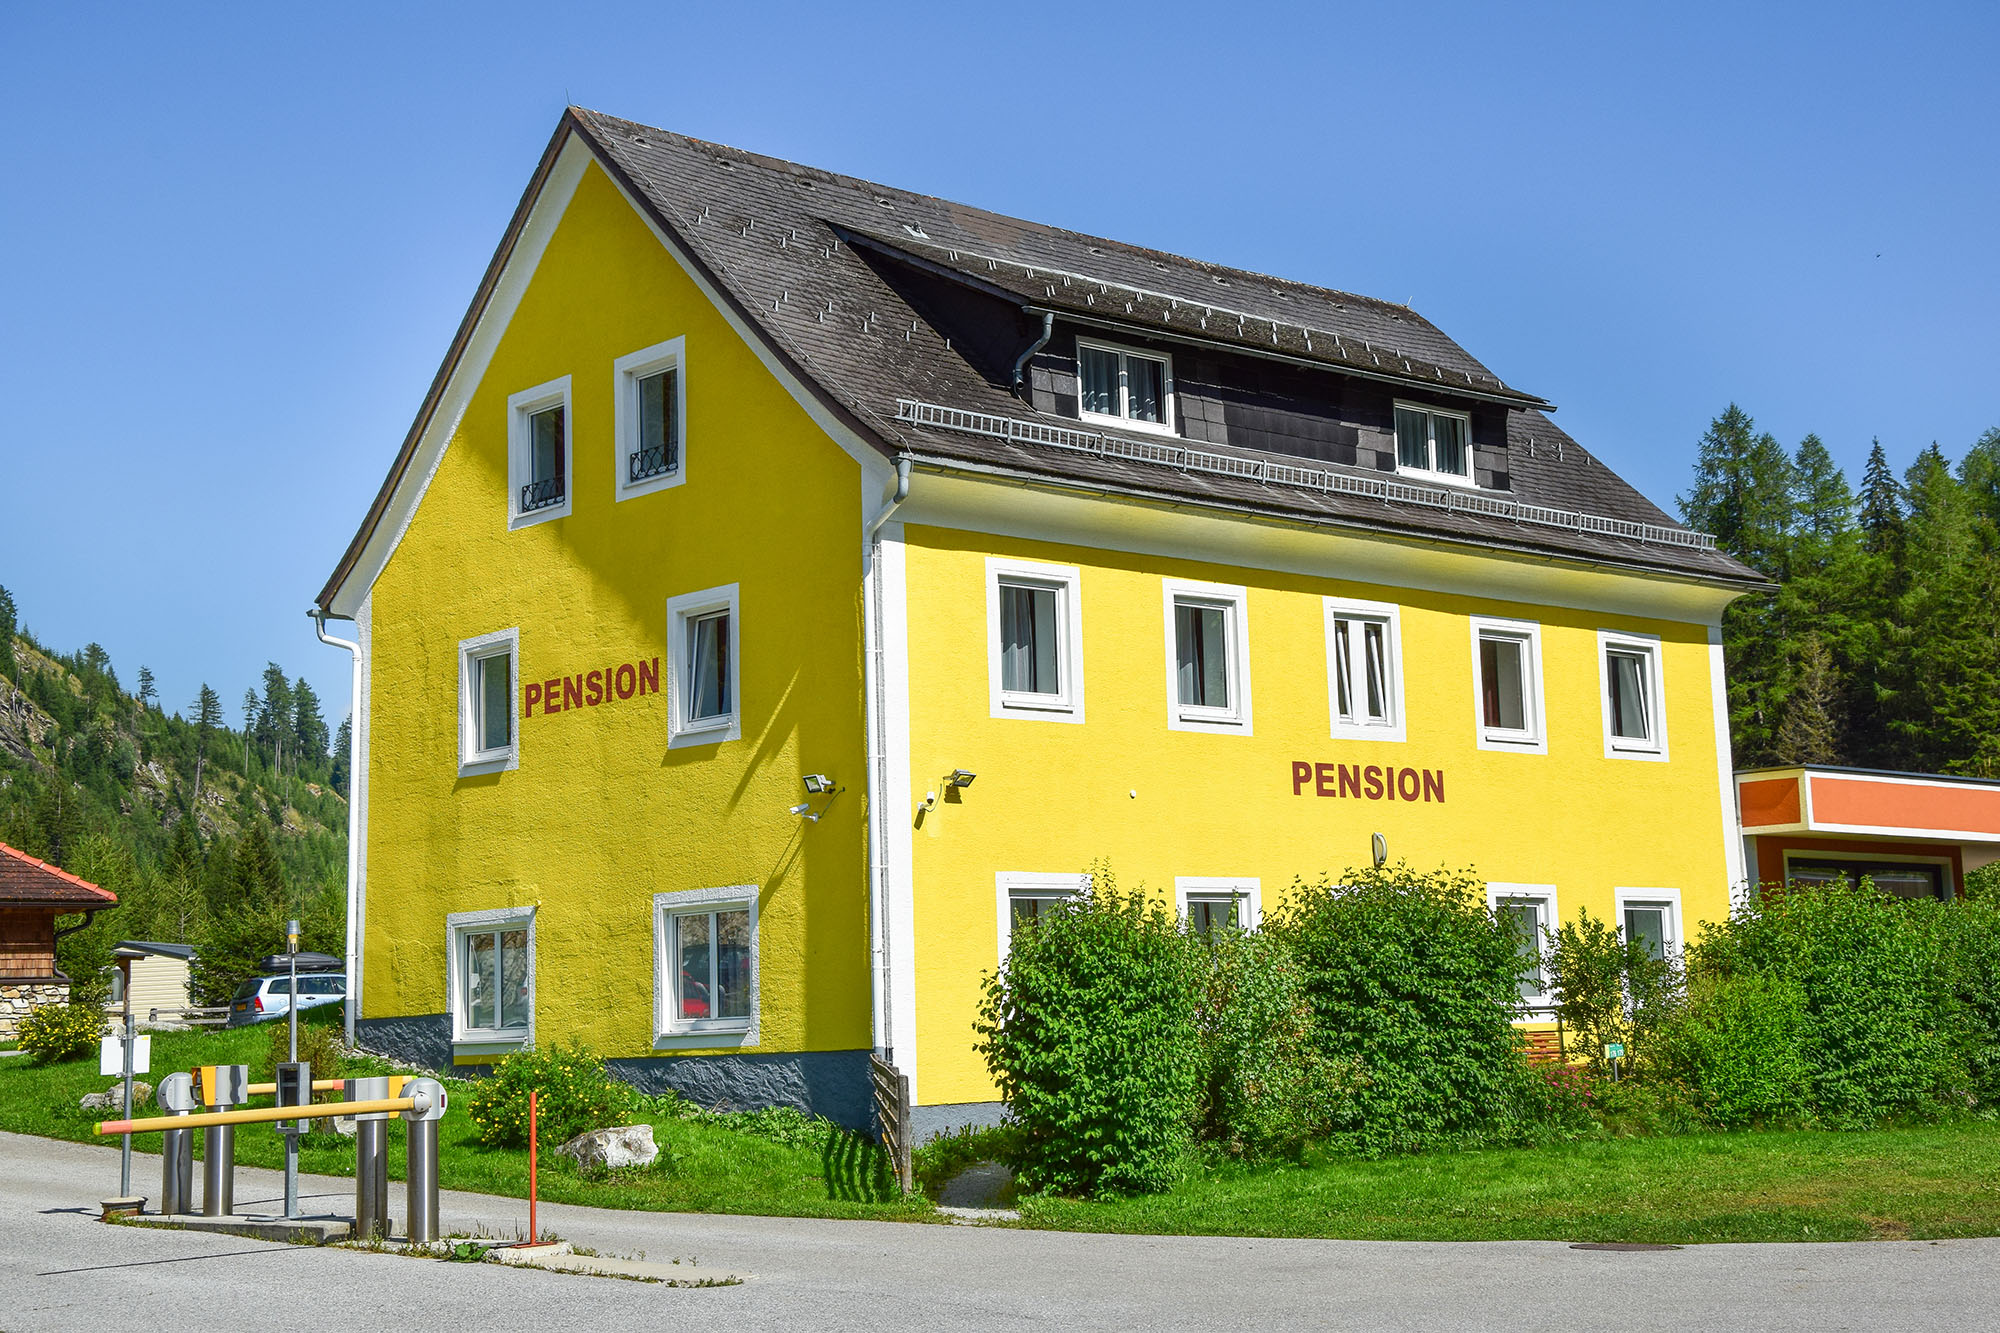 Pension in Mauterndorf